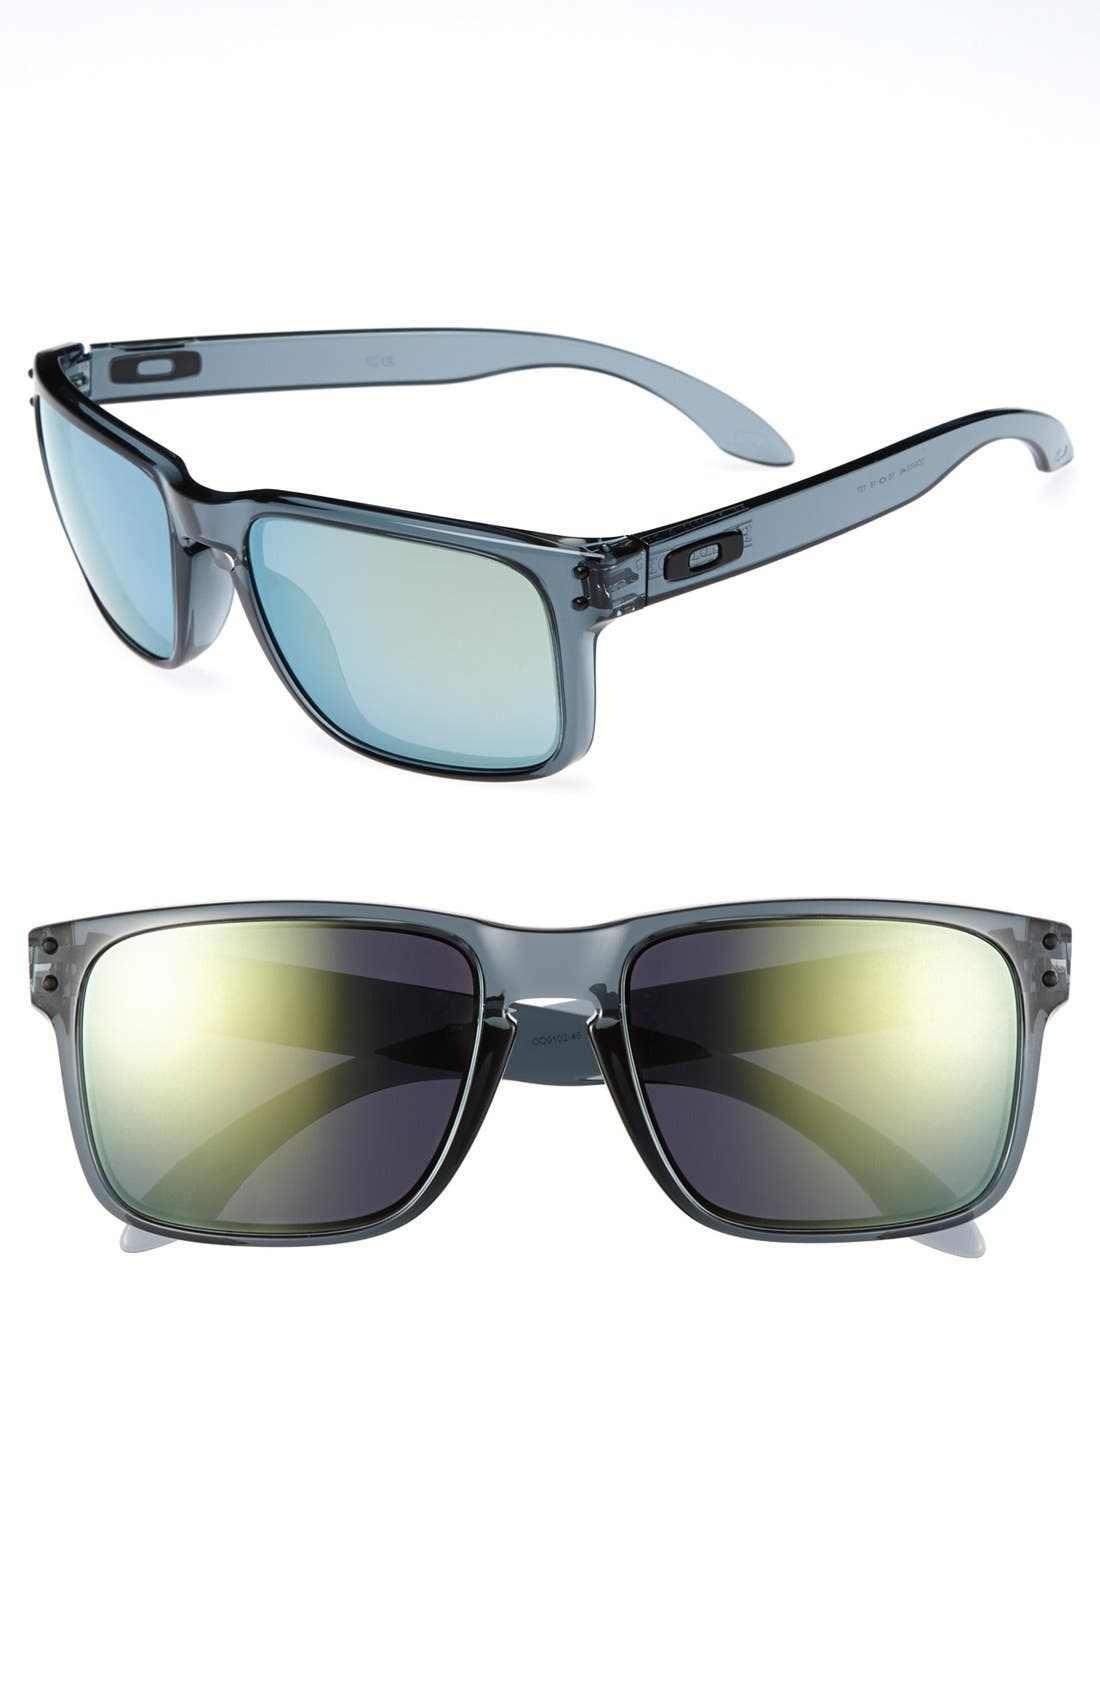 Main Image - Oakley 'Holbrook' 55mm Sunglasses